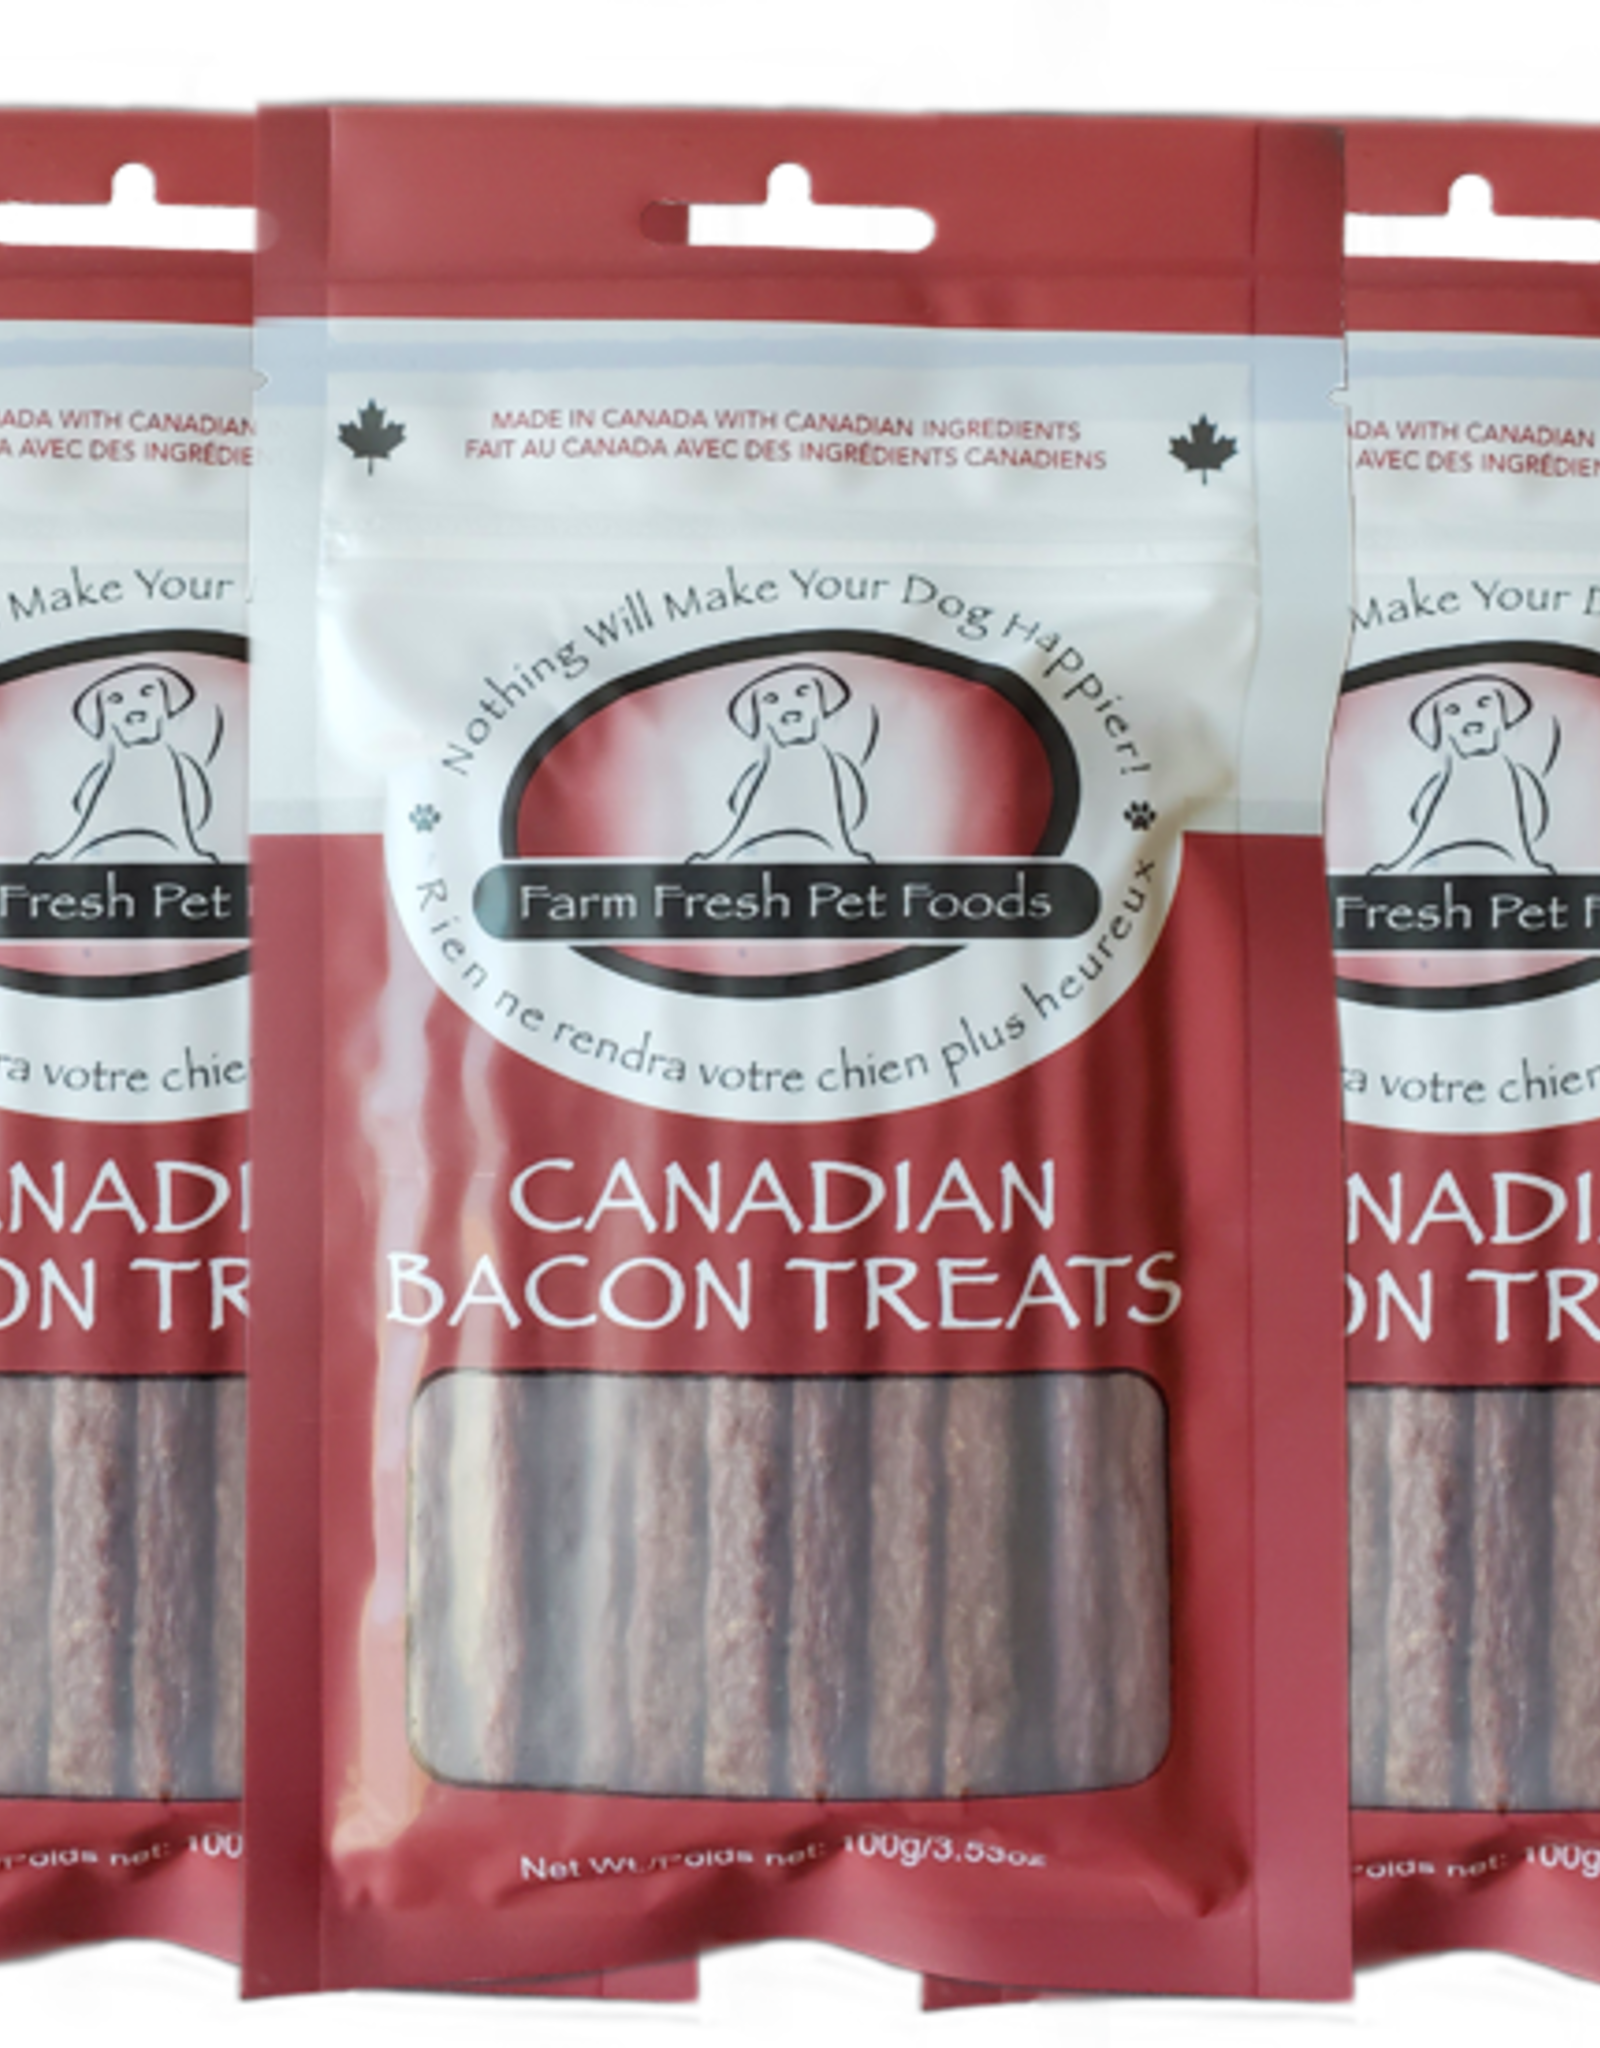 Farm Fresh Farm Fresh Canadian Bacon Treats 100g